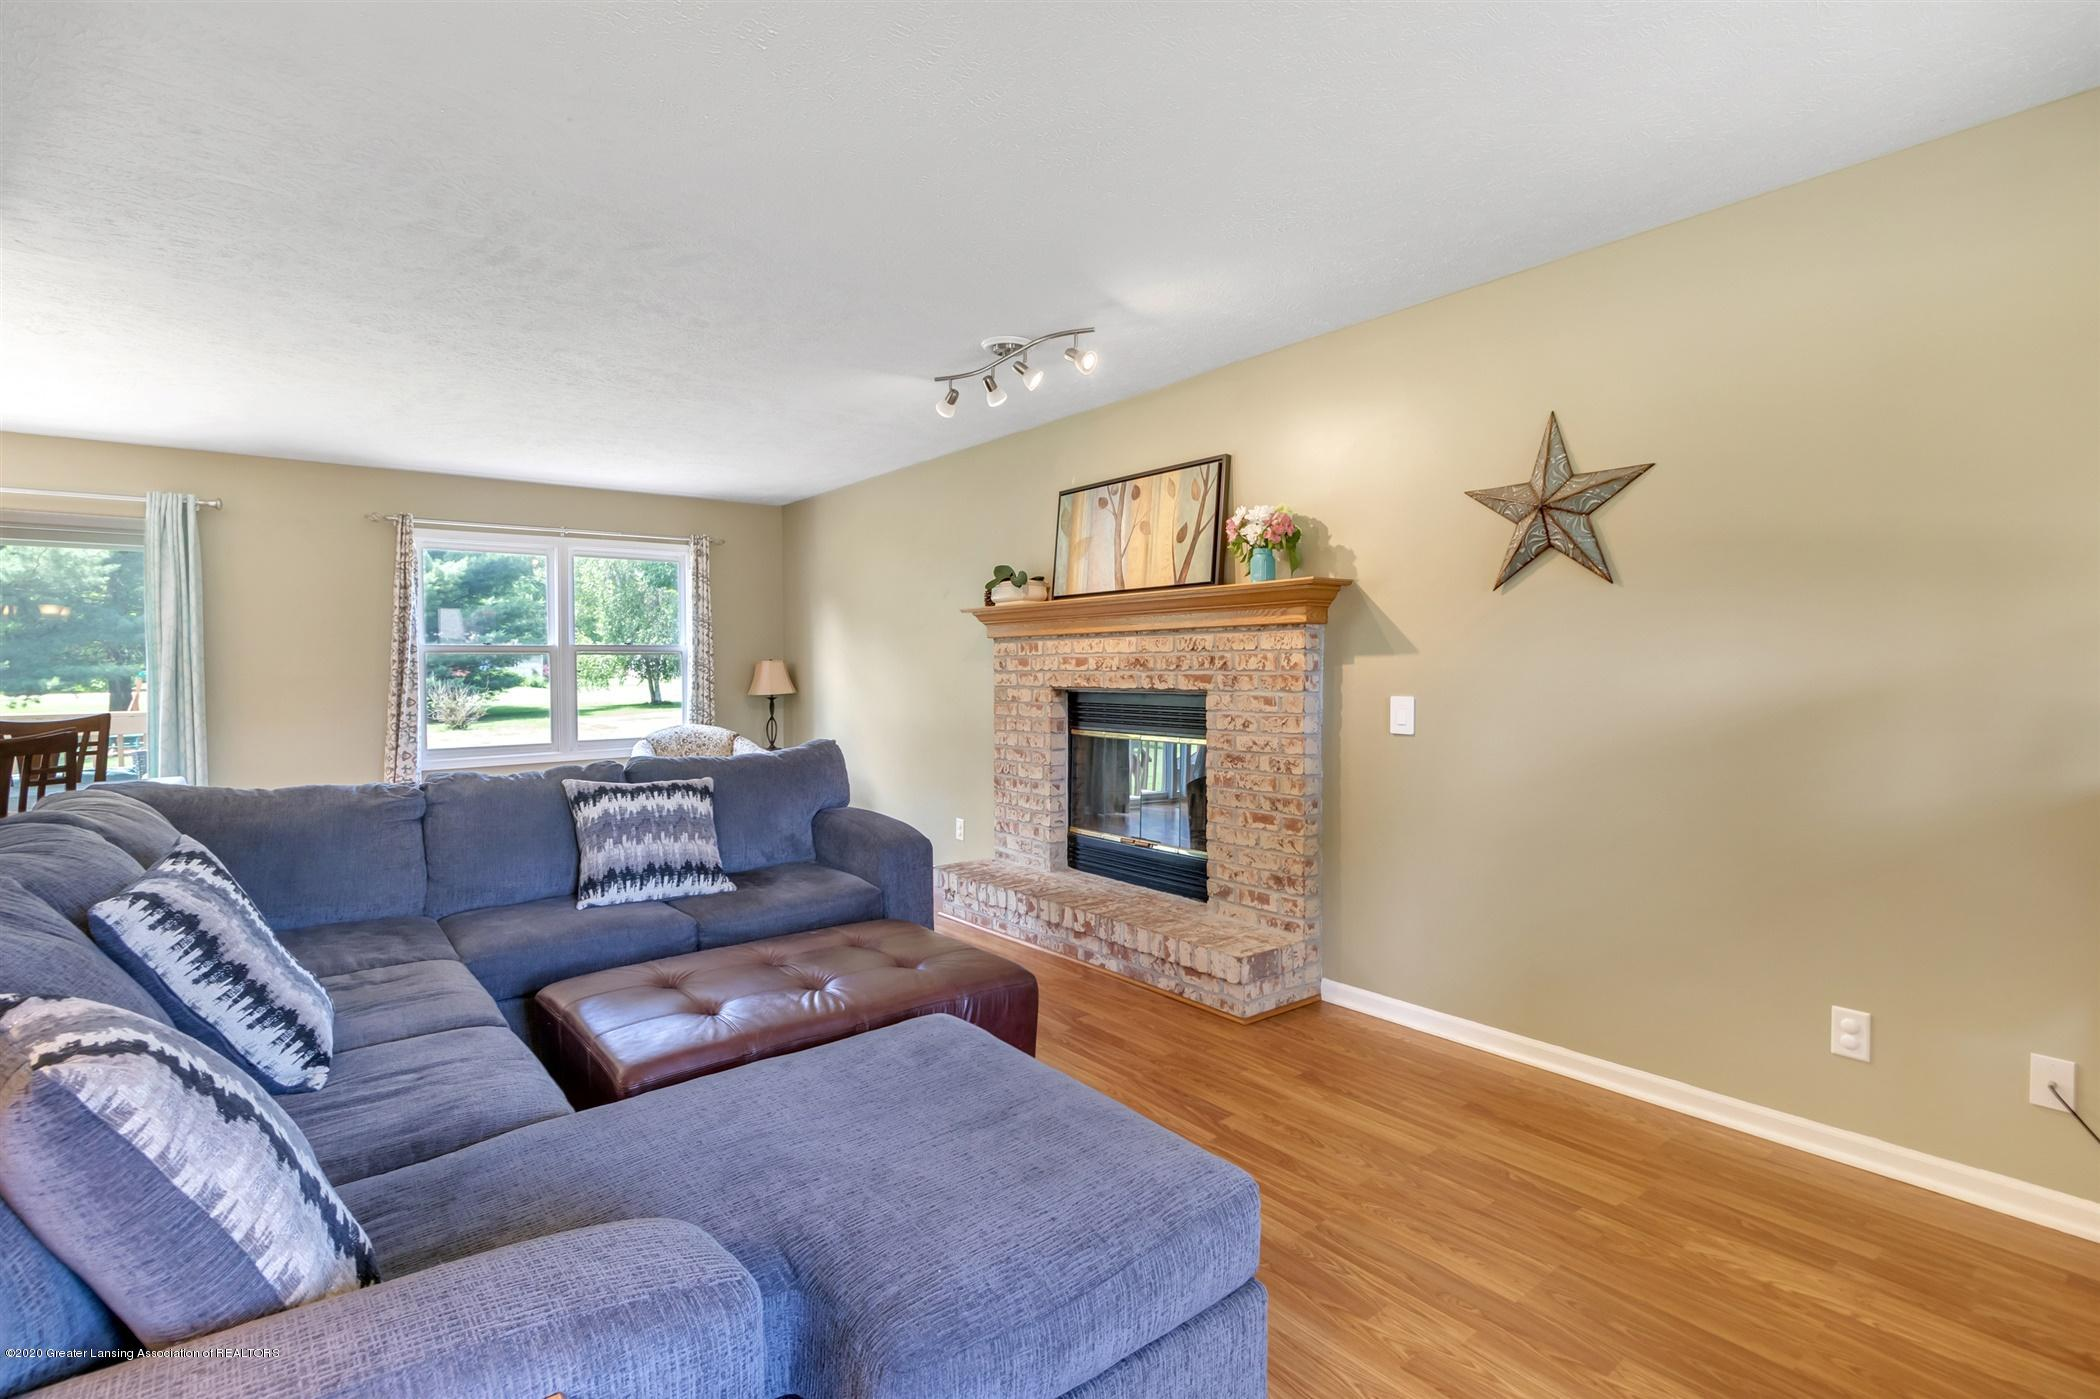 2945 Whistlewood Way - 09-2945Whistlewood-WindowStill-Real - 9